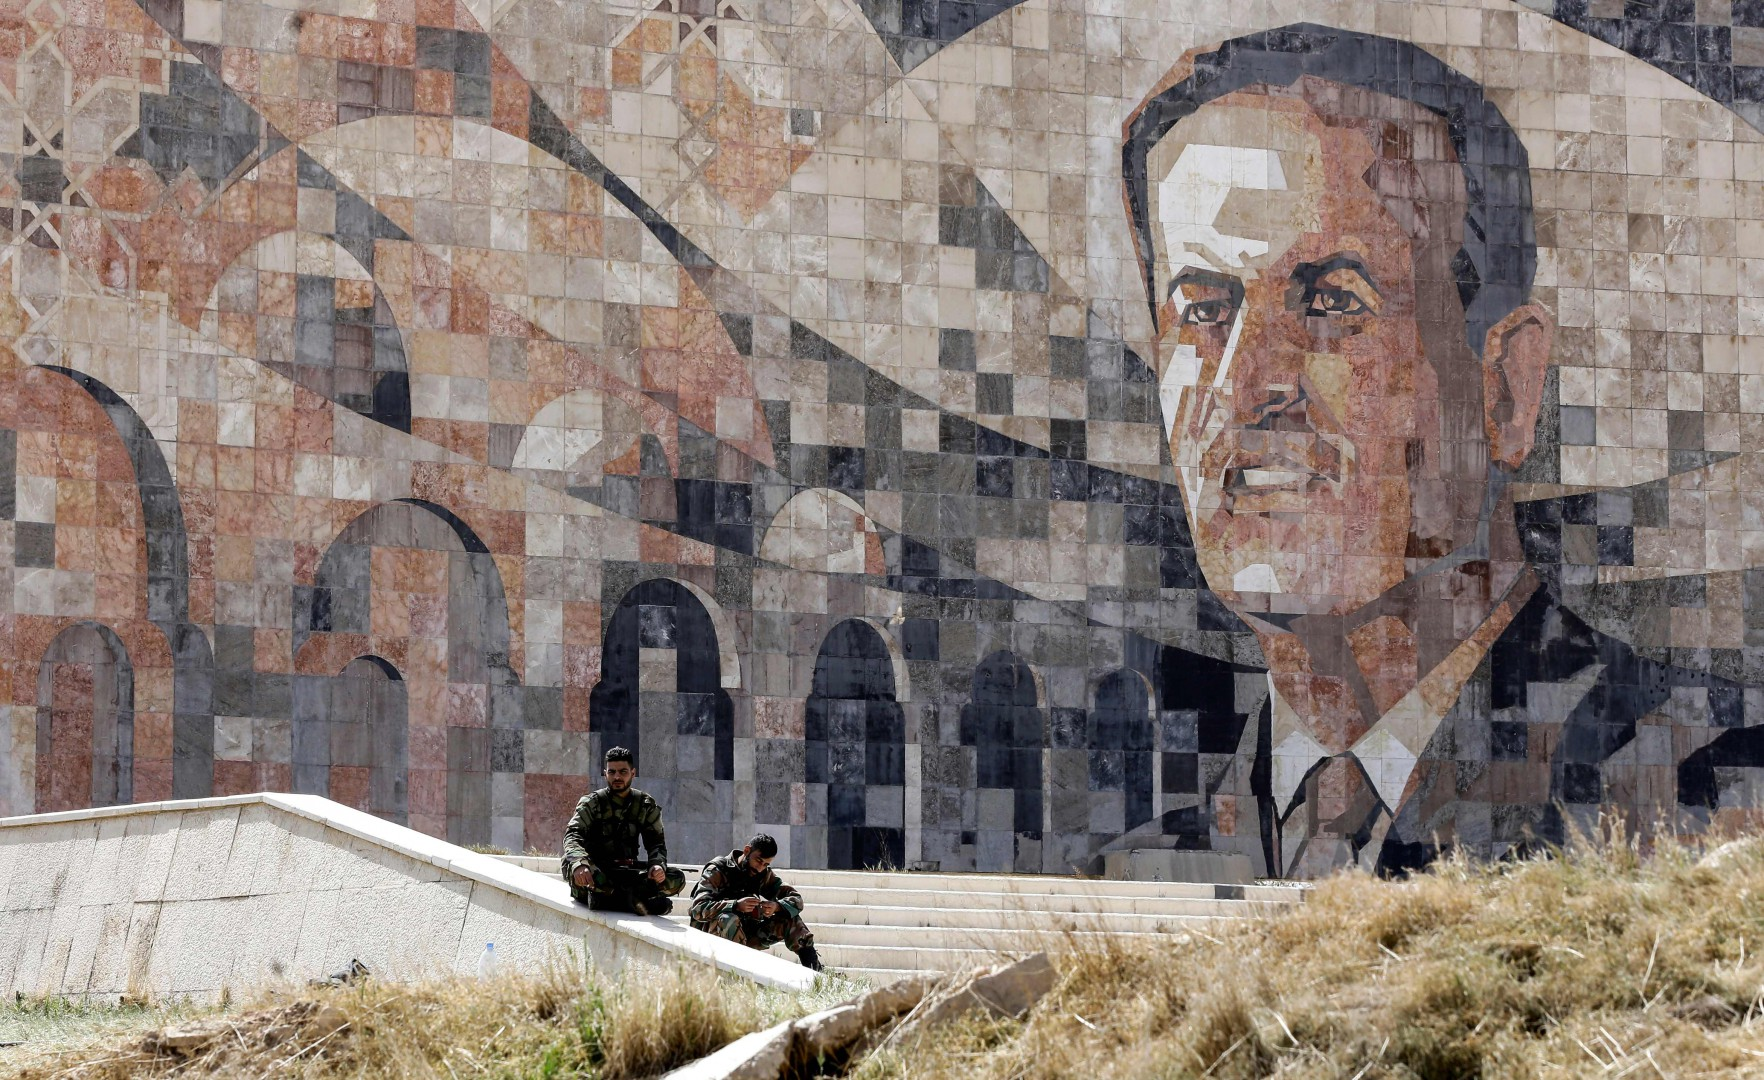 Syrian regime forces sit by a marble mosaic monument depicting a picture of late President Hafez al-Assad, at the entrance of Harasta in Eastern Ghouta on the outskirts of Damascus on March 25, 2018, after a deal was struck with rebels in the area to evacuate the town. Syrian rebels and civilians gathered in rubble-strewn streets, awaiting evacuation from the penultimate opposition-held pocket of Eastern Ghouta. Faylaq al-Rahman, the Islamist rebel group that controls the area, agreed to pull out in exchange for an end to nearly five weeks of devastating bombardment by the government and its allies.   / AFP PHOTO / LOUAI BESHARA